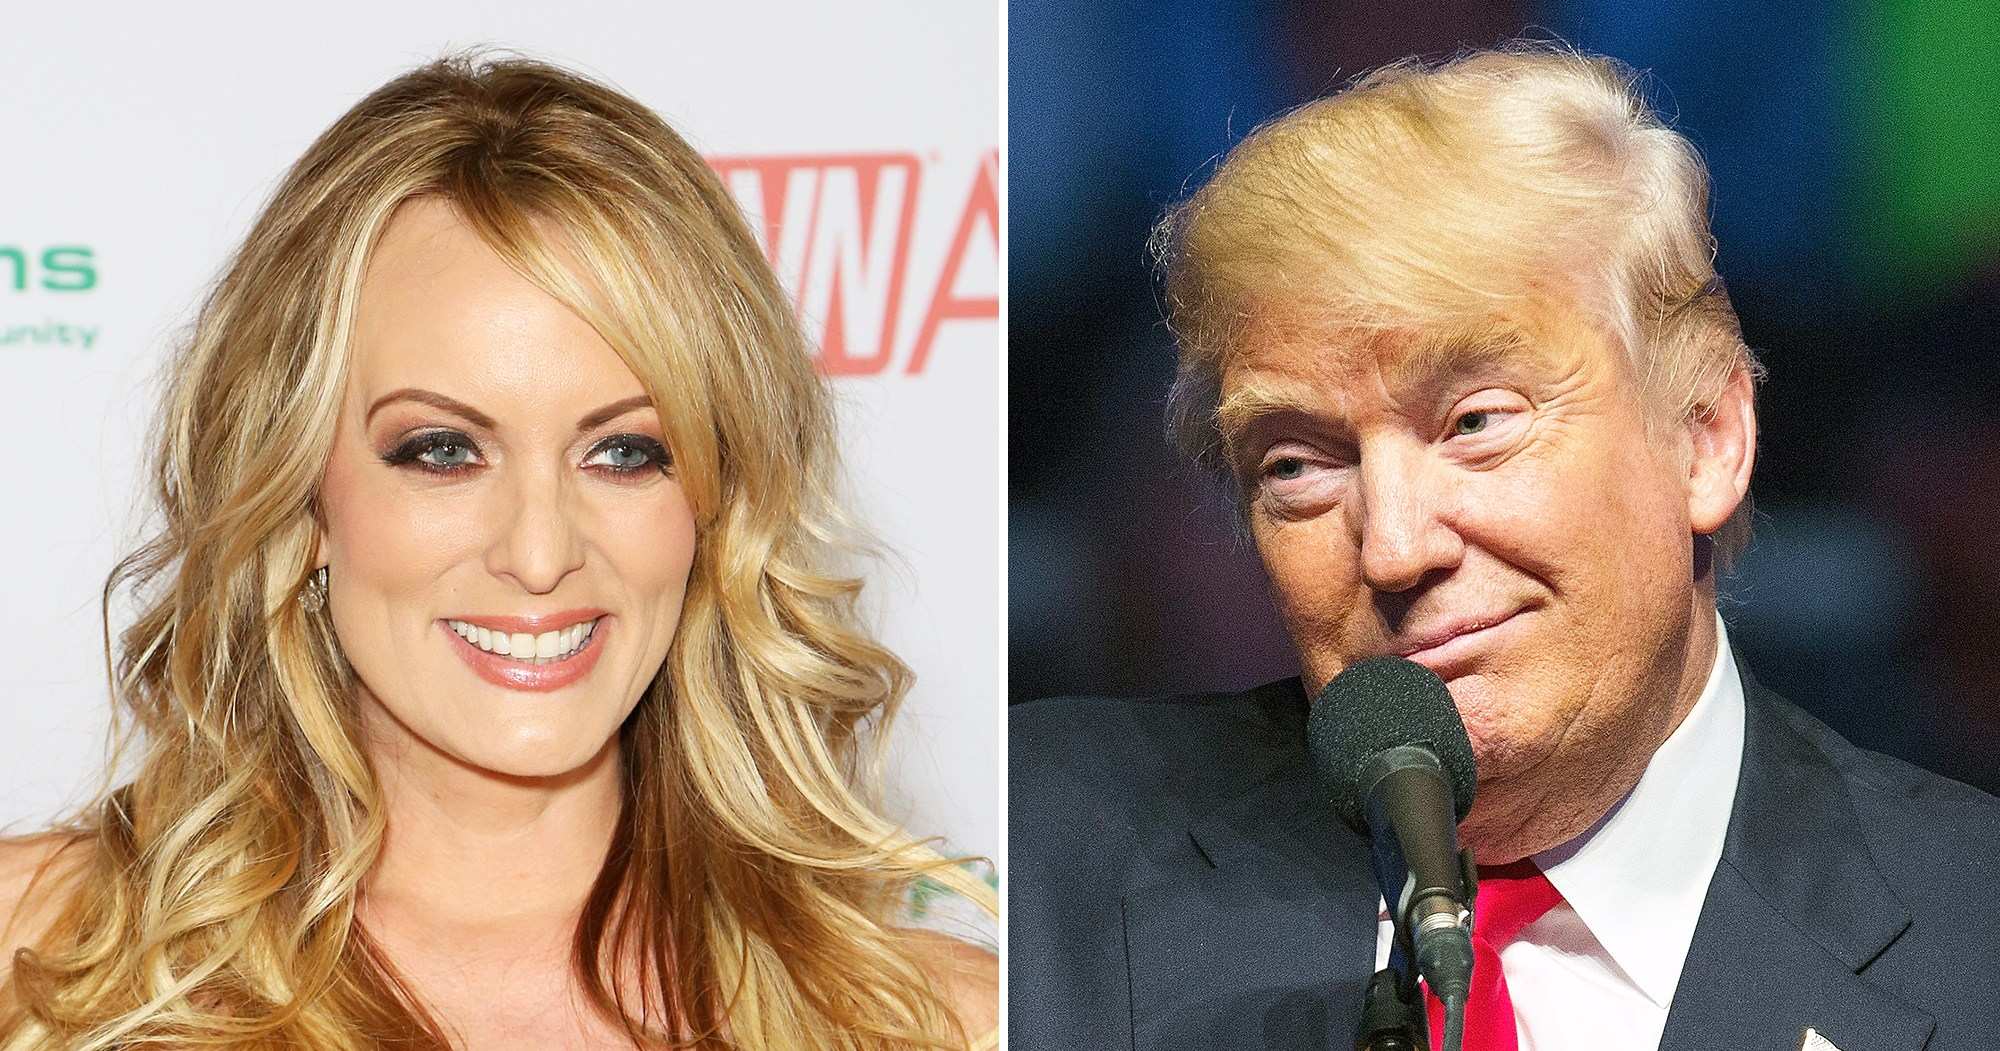 Porn Star Stormy Daniels Made a Fundraising Page for Her Lawsuit Against President Donald Trump